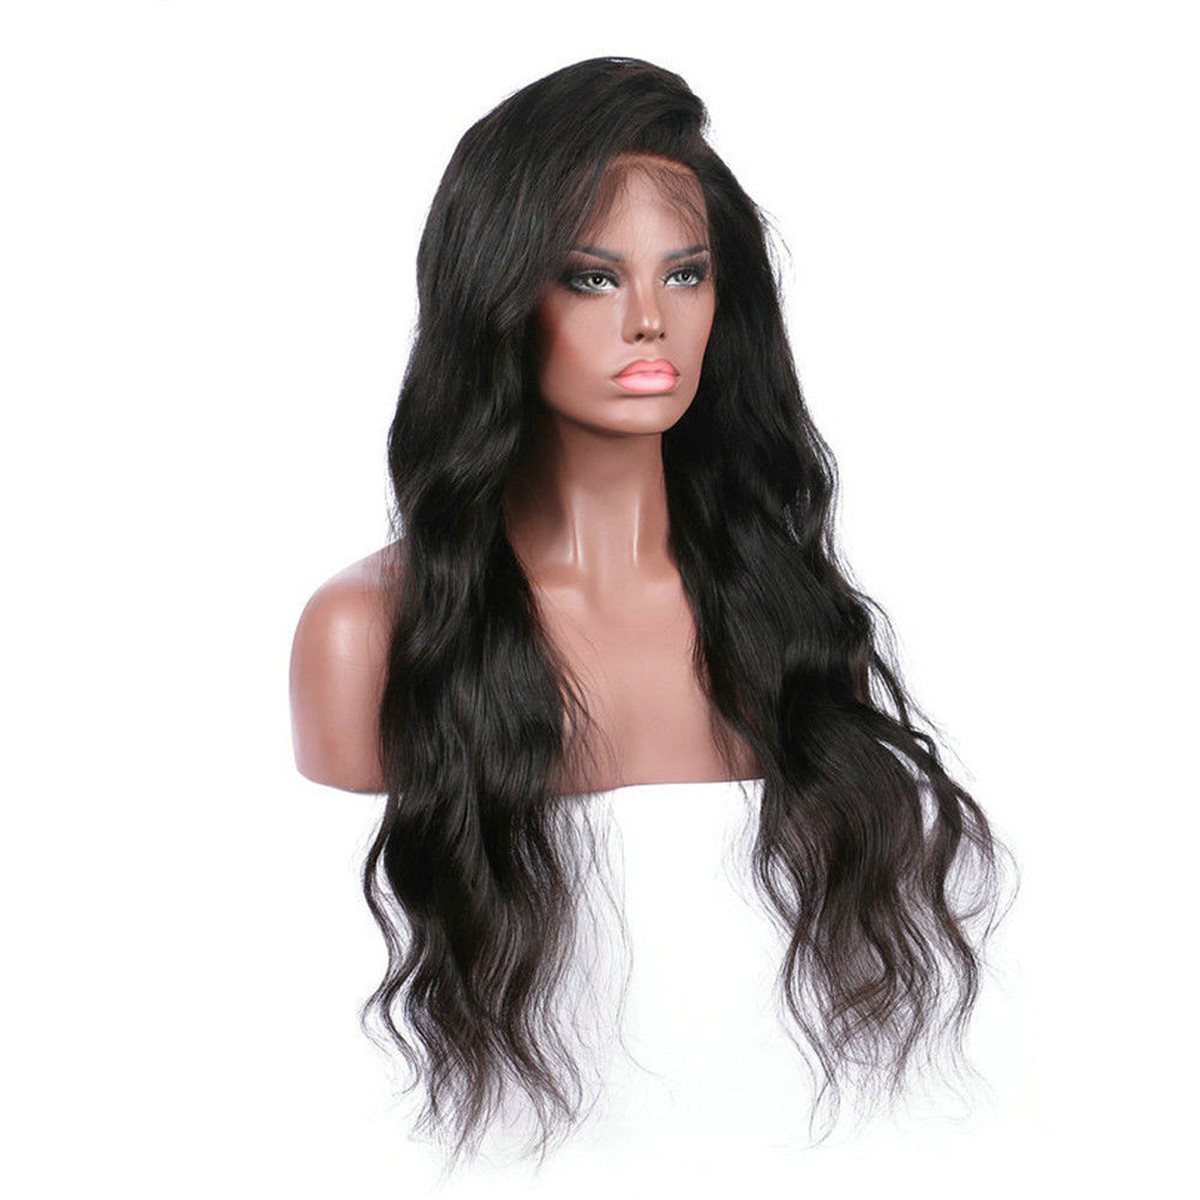 26 inch Black Women Curly Wig